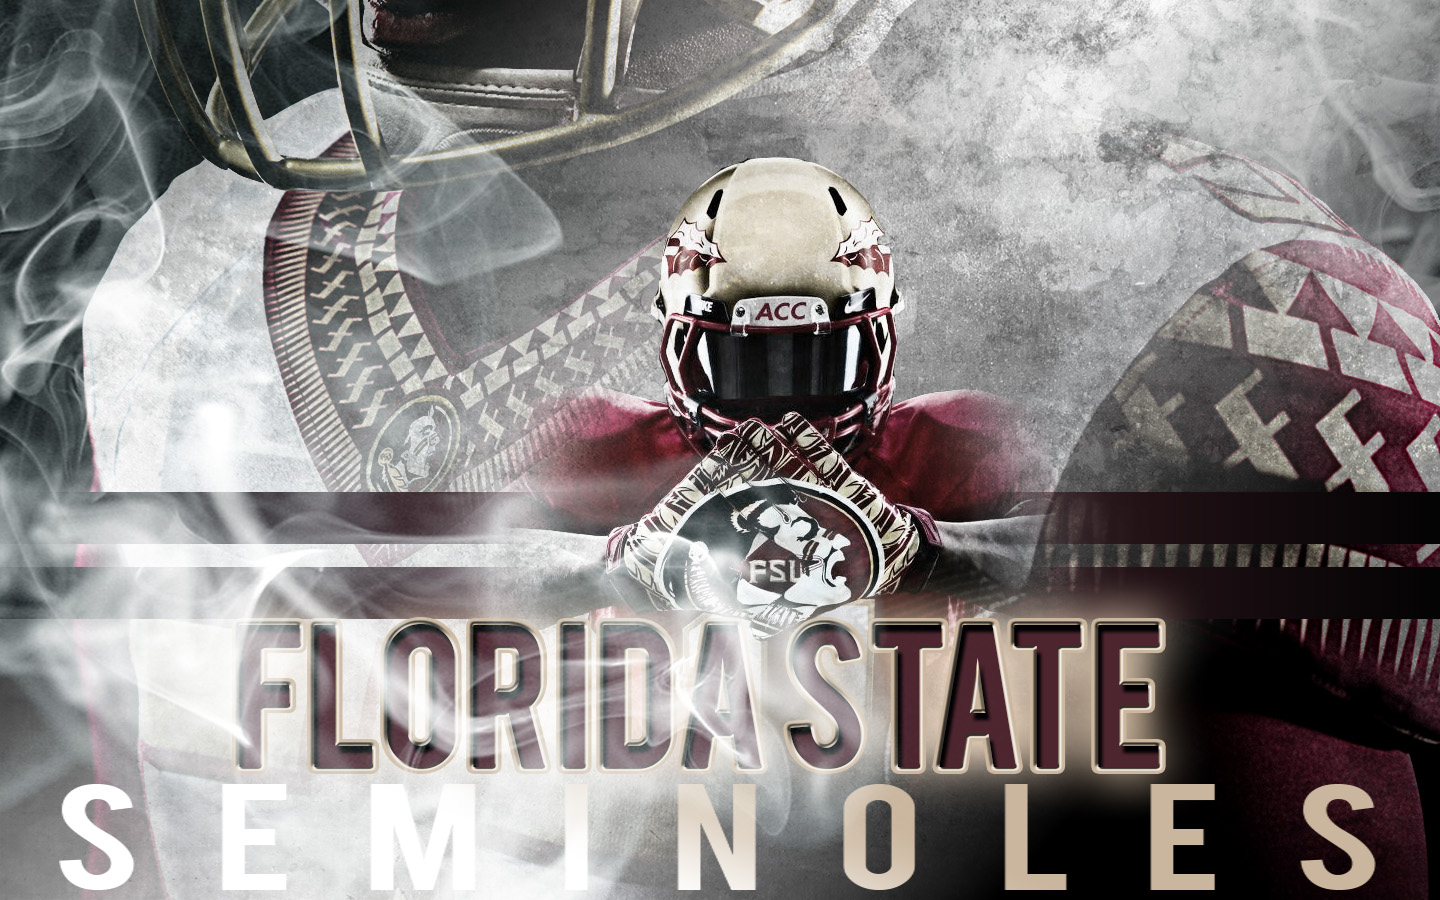 Fsu Desktop Wallpaper for Pinterest 1440x900